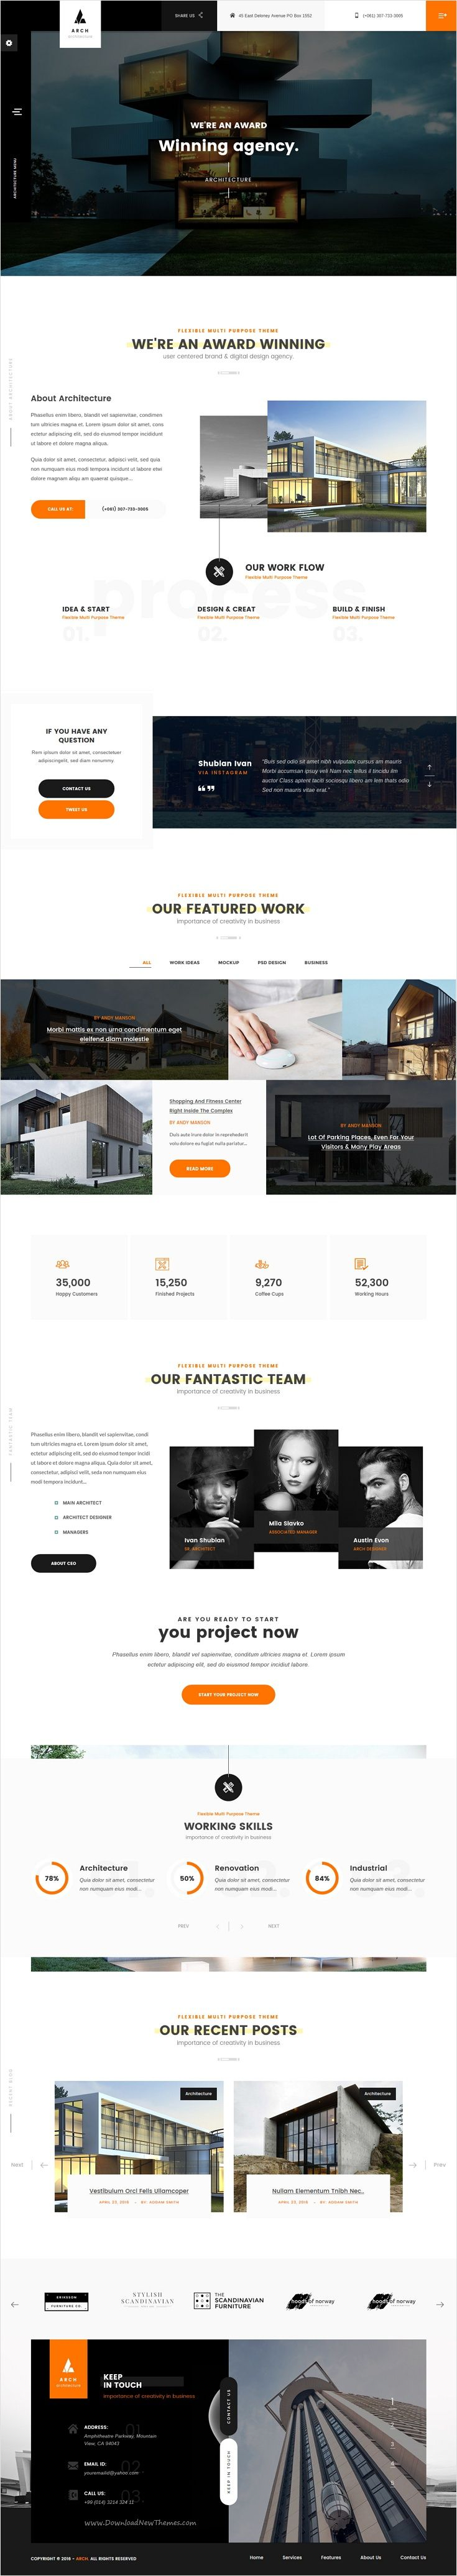 Arch is a Premium One page & Multi-page #bootstrap template best suitable for Design #Architecture, Engineering #agencies, photographers and personal portfolios related services website download now➩ https://themeforest.net/item/arch-multipurpose-onepage-multipage-html-template/18567948?ref=Datasata